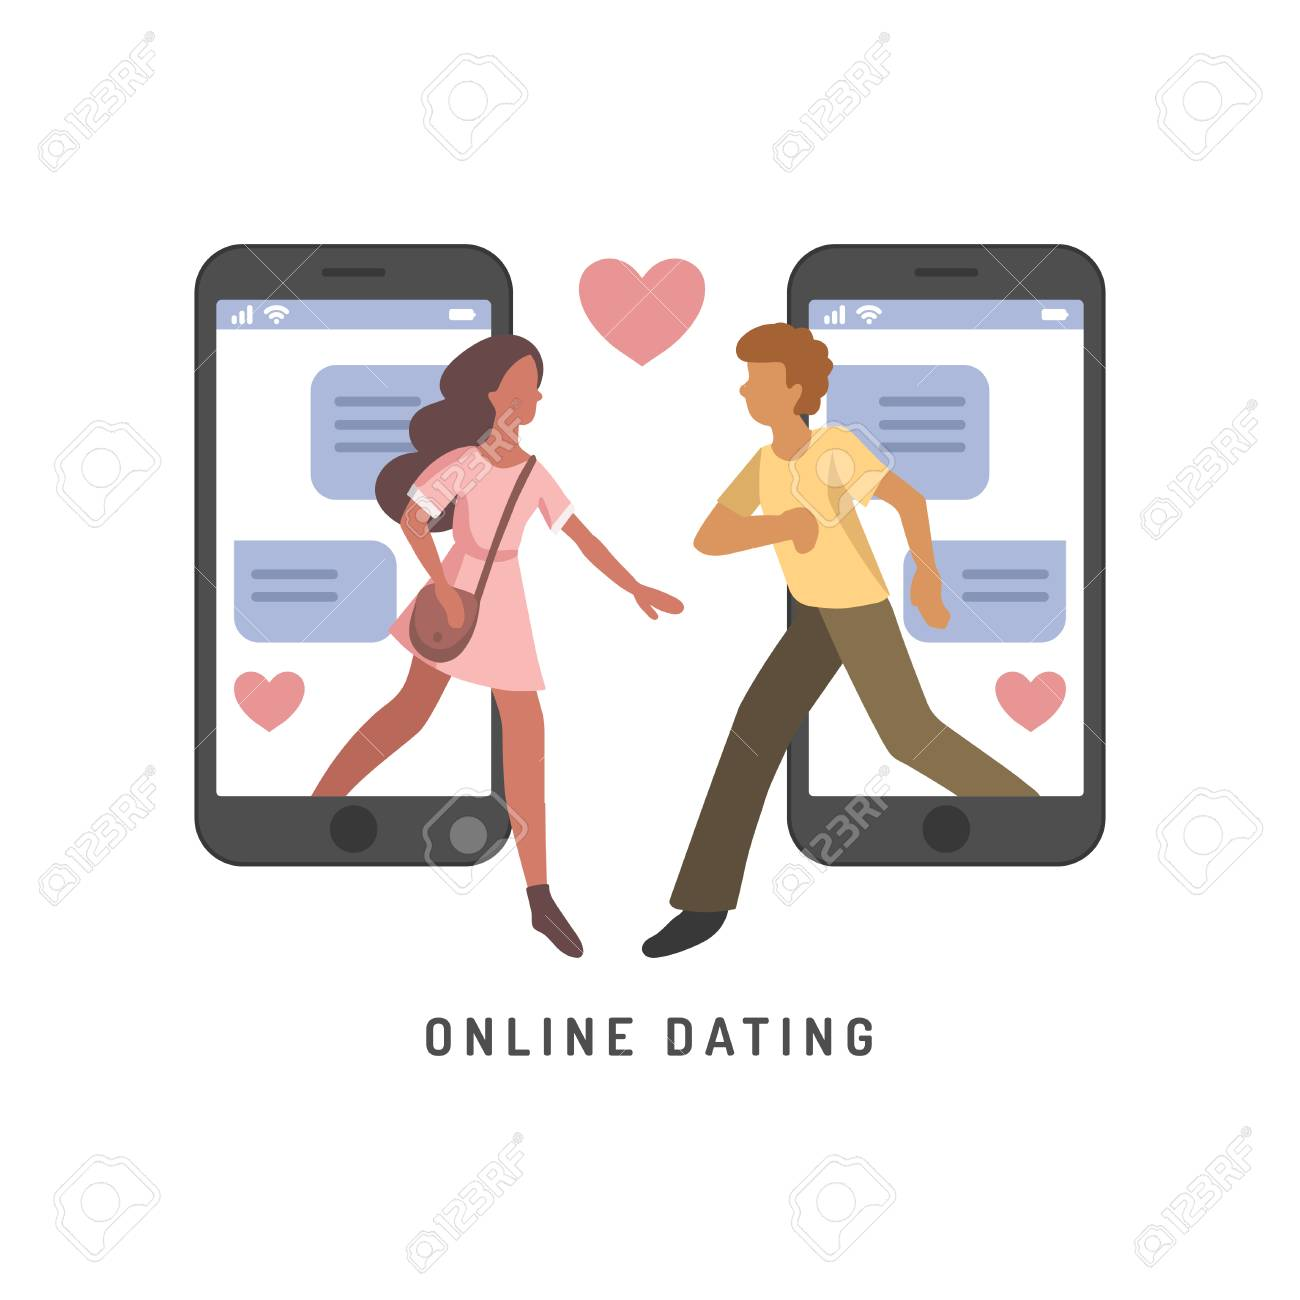 Online dating infographics